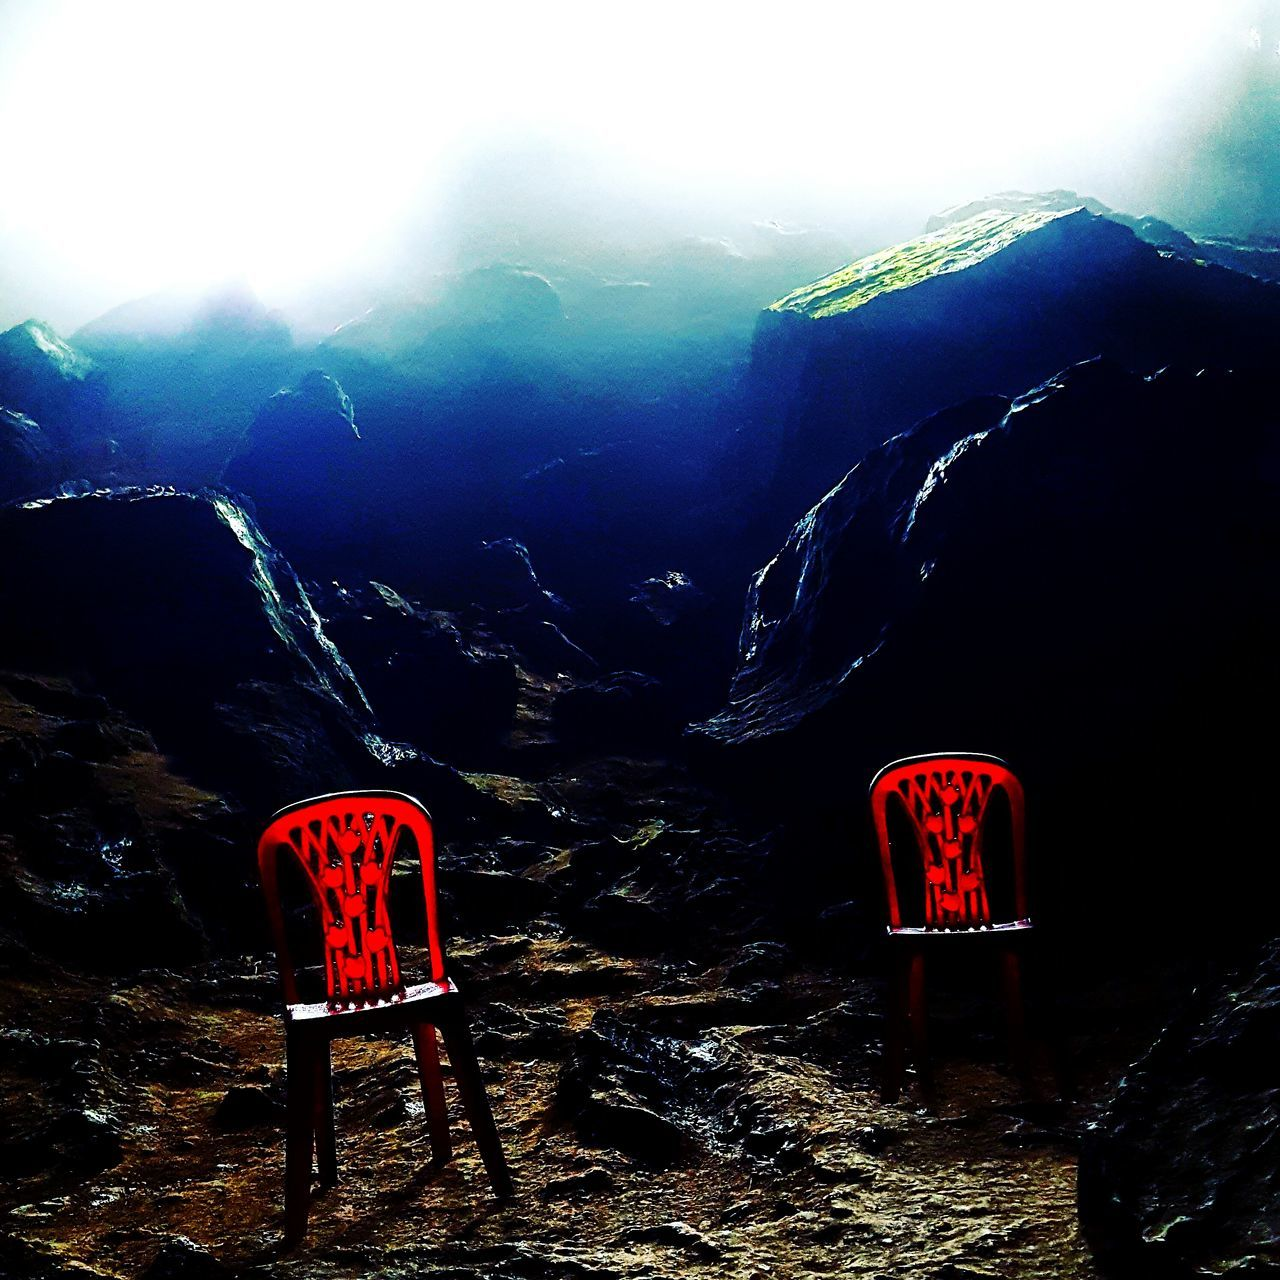 chair, nature, illuminated, red, mountain, no people, beauty in nature, landscape, outdoors, winter, night